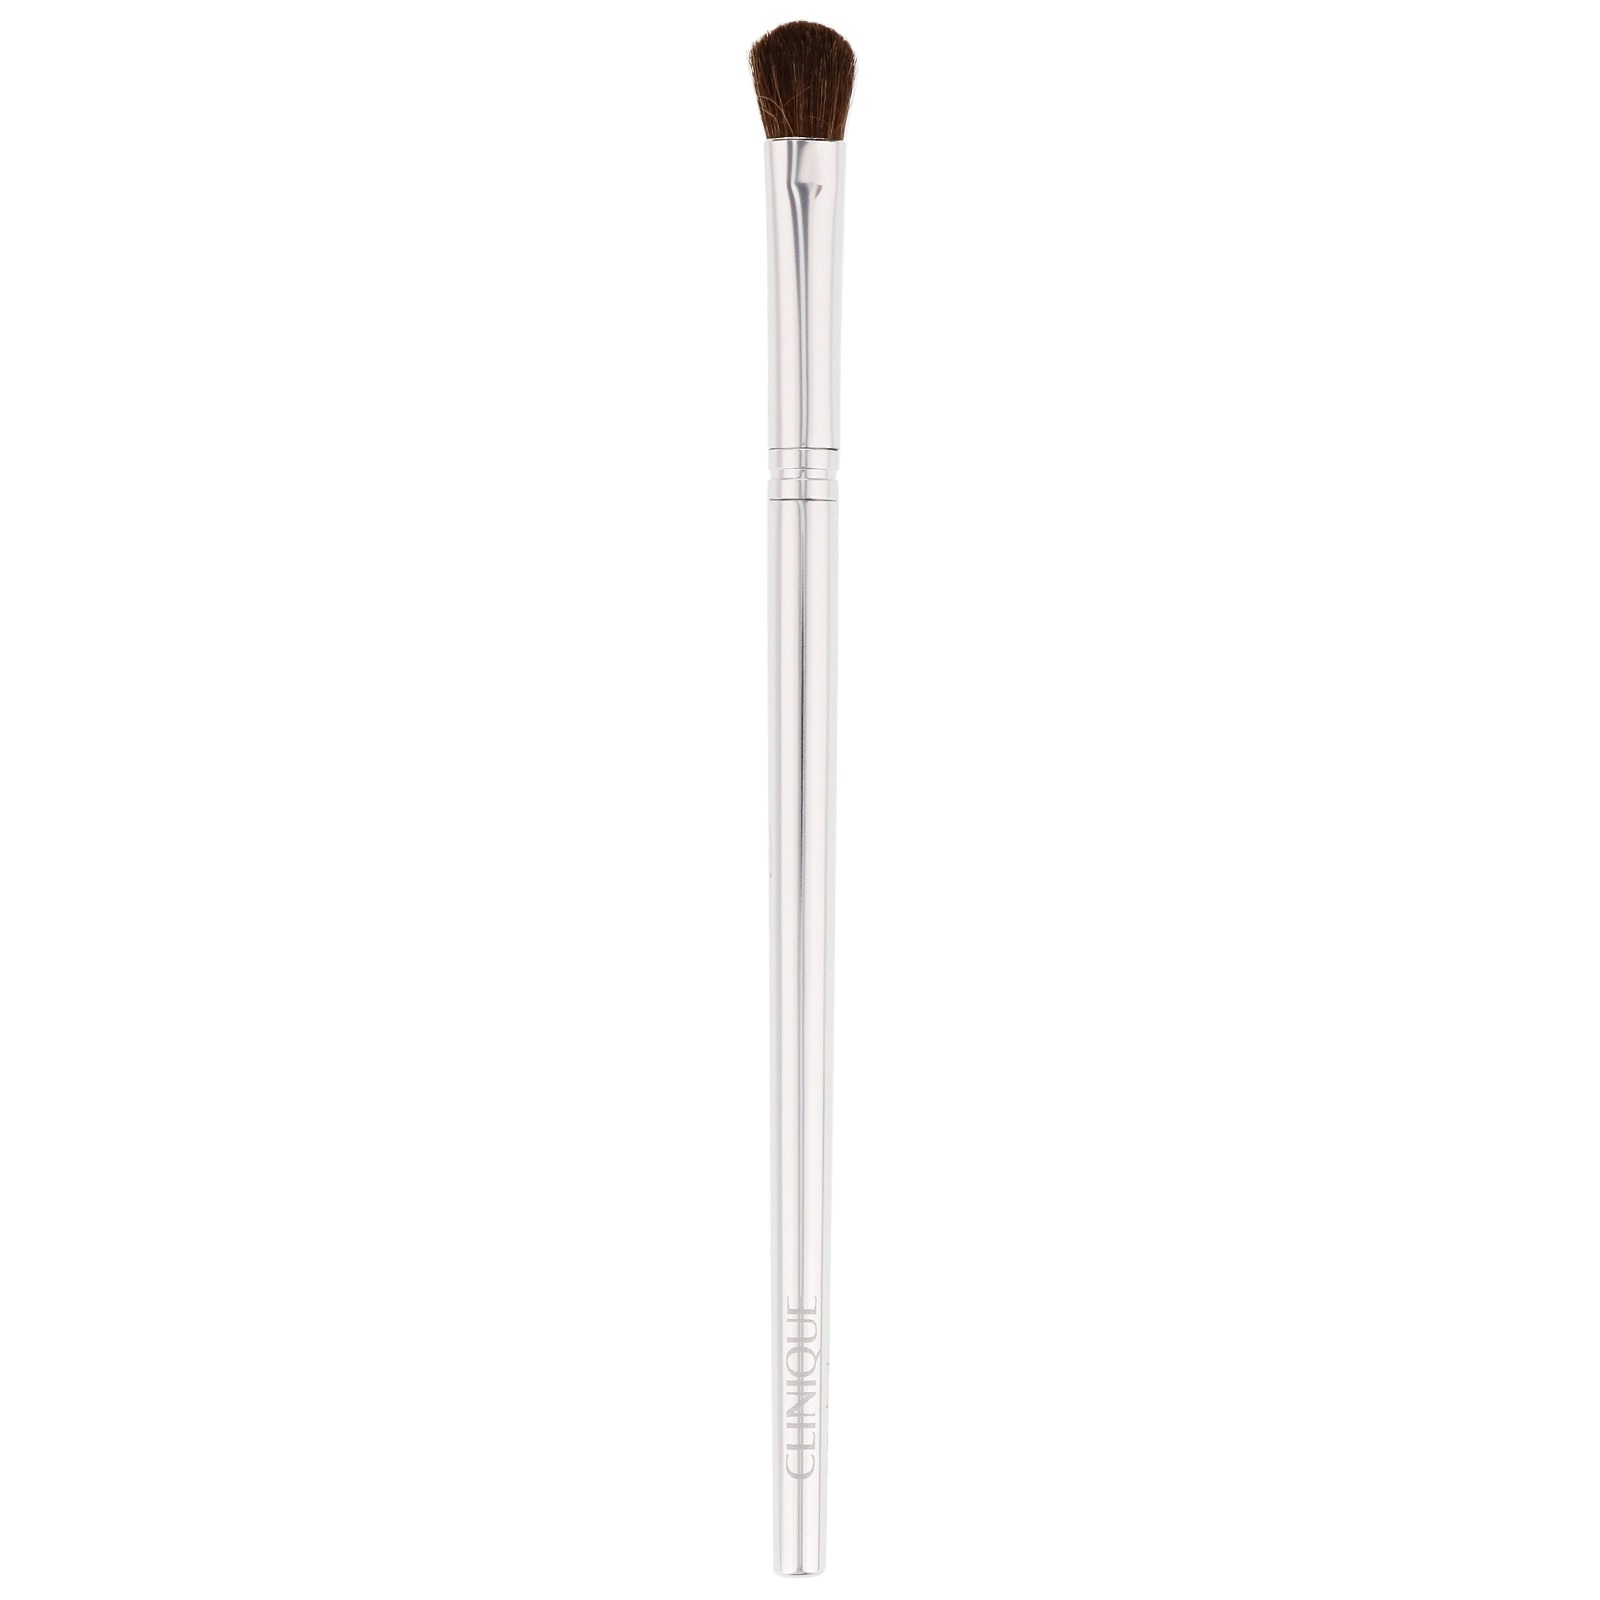 Clinique The Brush Collection Eye Shadow Brush